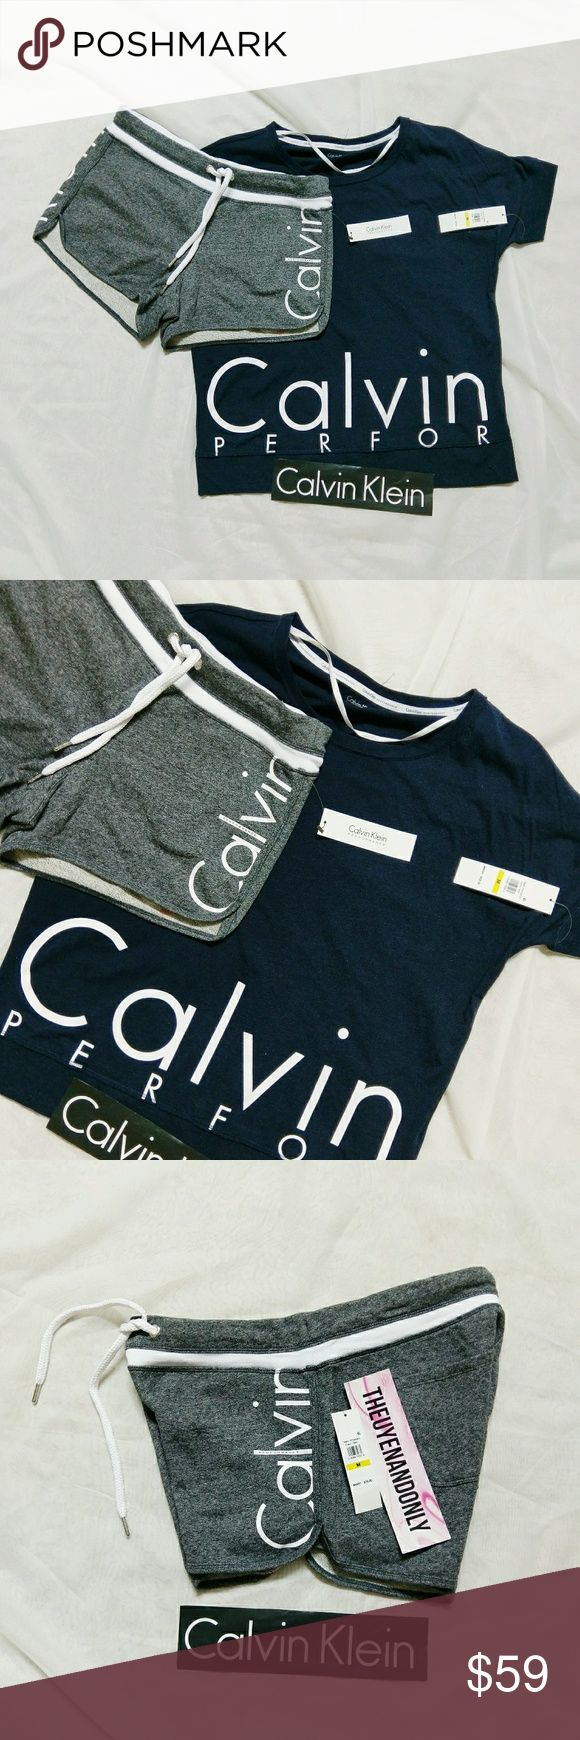 NWT Authentic CK Calvin Klein Performance Set PRICE IS FIRM  AUTHENTIC - NEW WITH TAGS  Not Accepting ANY Offer  FREE SHIPPING is available , please contact for more info  ONLY 1 SET is available. You will receive both in size MEDIUM Calvin Klein Tops Tees - Short Sleeve